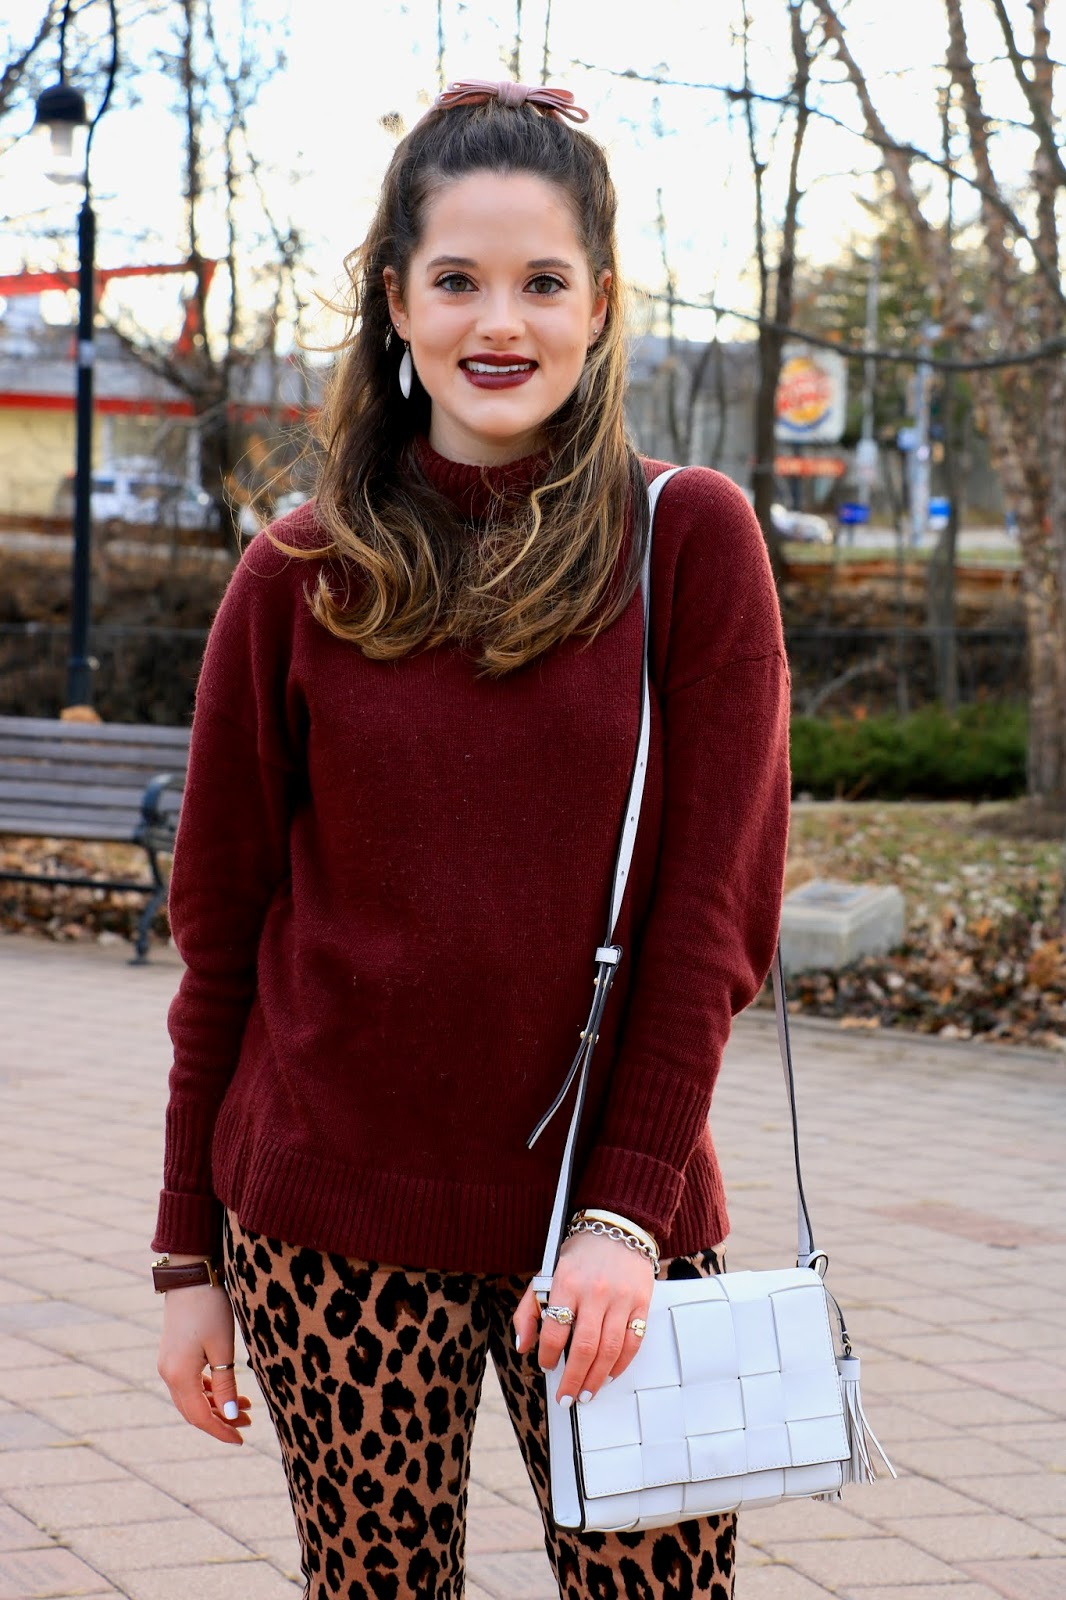 Nyc fashion blogger Kathleen Harper's Valentine's Day makeup